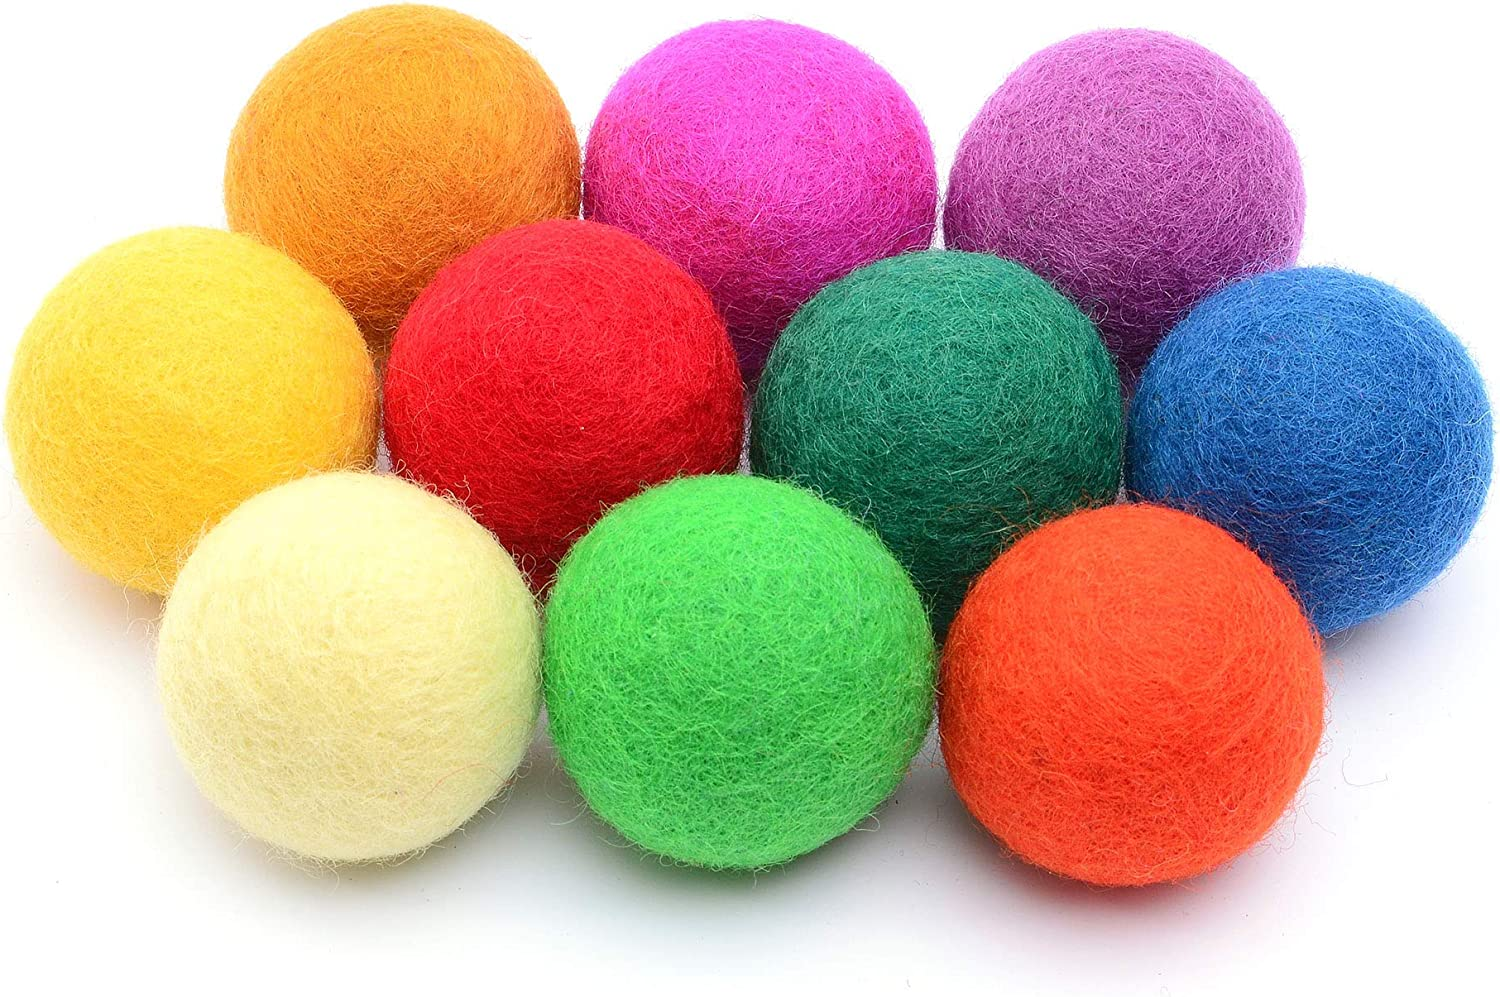 Glaciart One Felt Pom Poms 2.5 Centimeters Handmade Felted 30 Color 1 Inch Red, Blue, Yellow, Gray, Black, White, Pastel and More Wool Balls 60 Pieces Bulk Small Puff for Felting and Garland